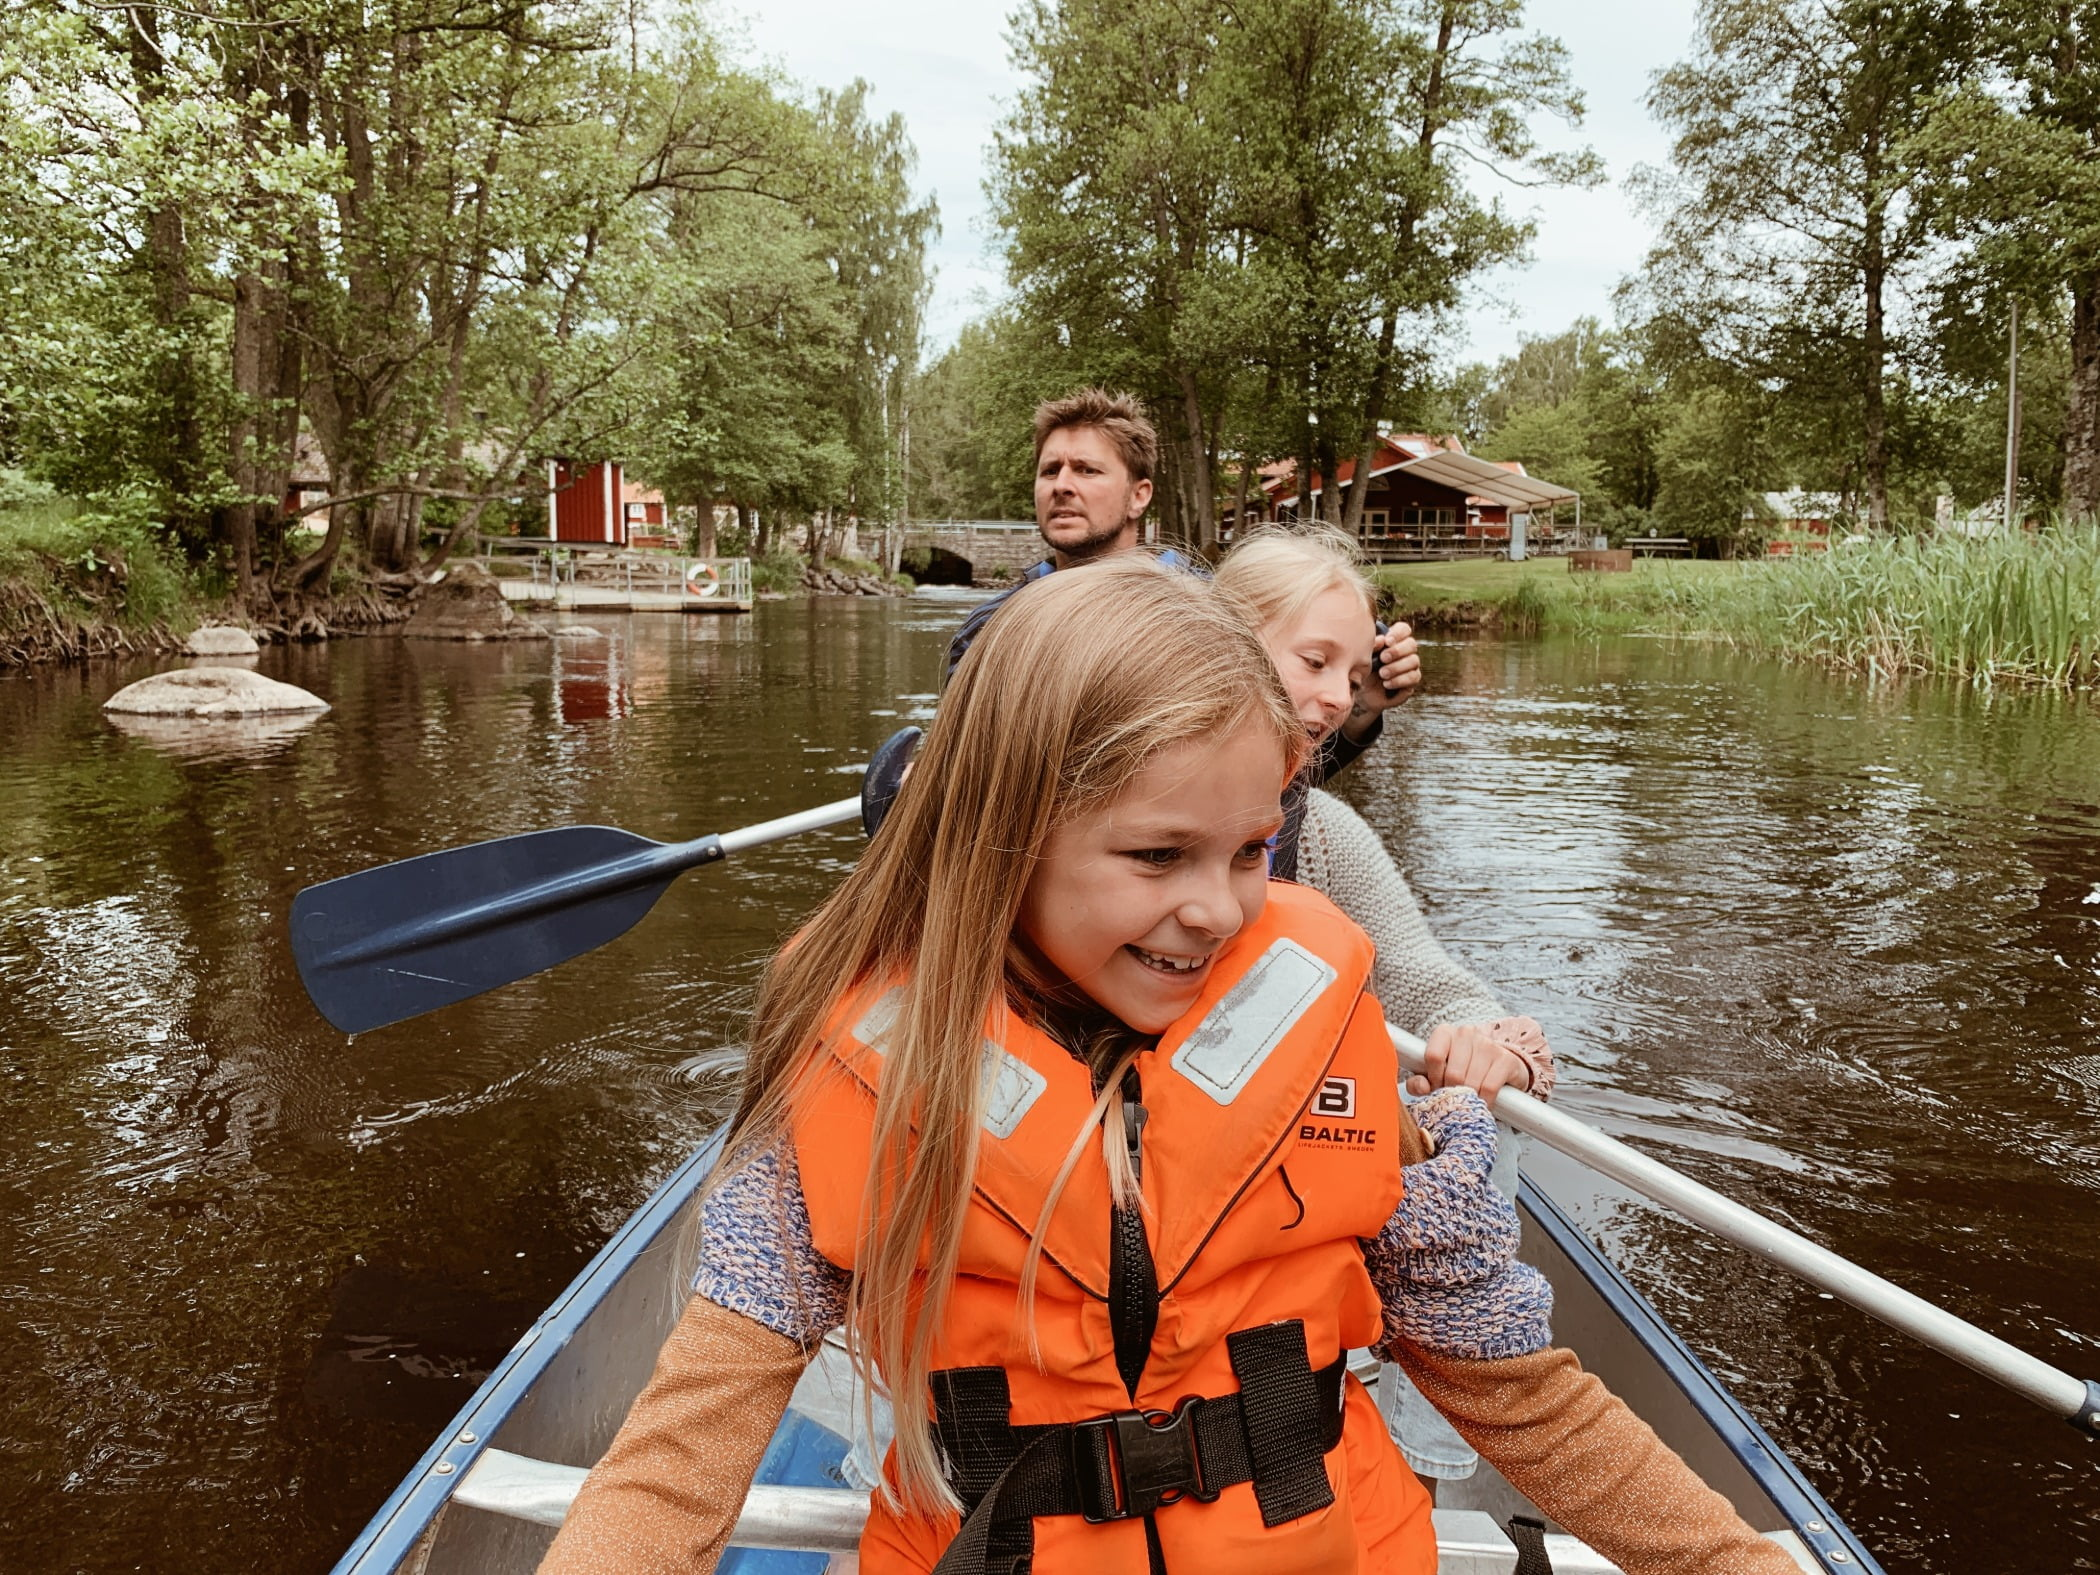 Boats and boating--Equipment and supplies, Water, Smile, Boat, Watercraft, Plant, Vehicle, Tree, Nature, Lifejacket